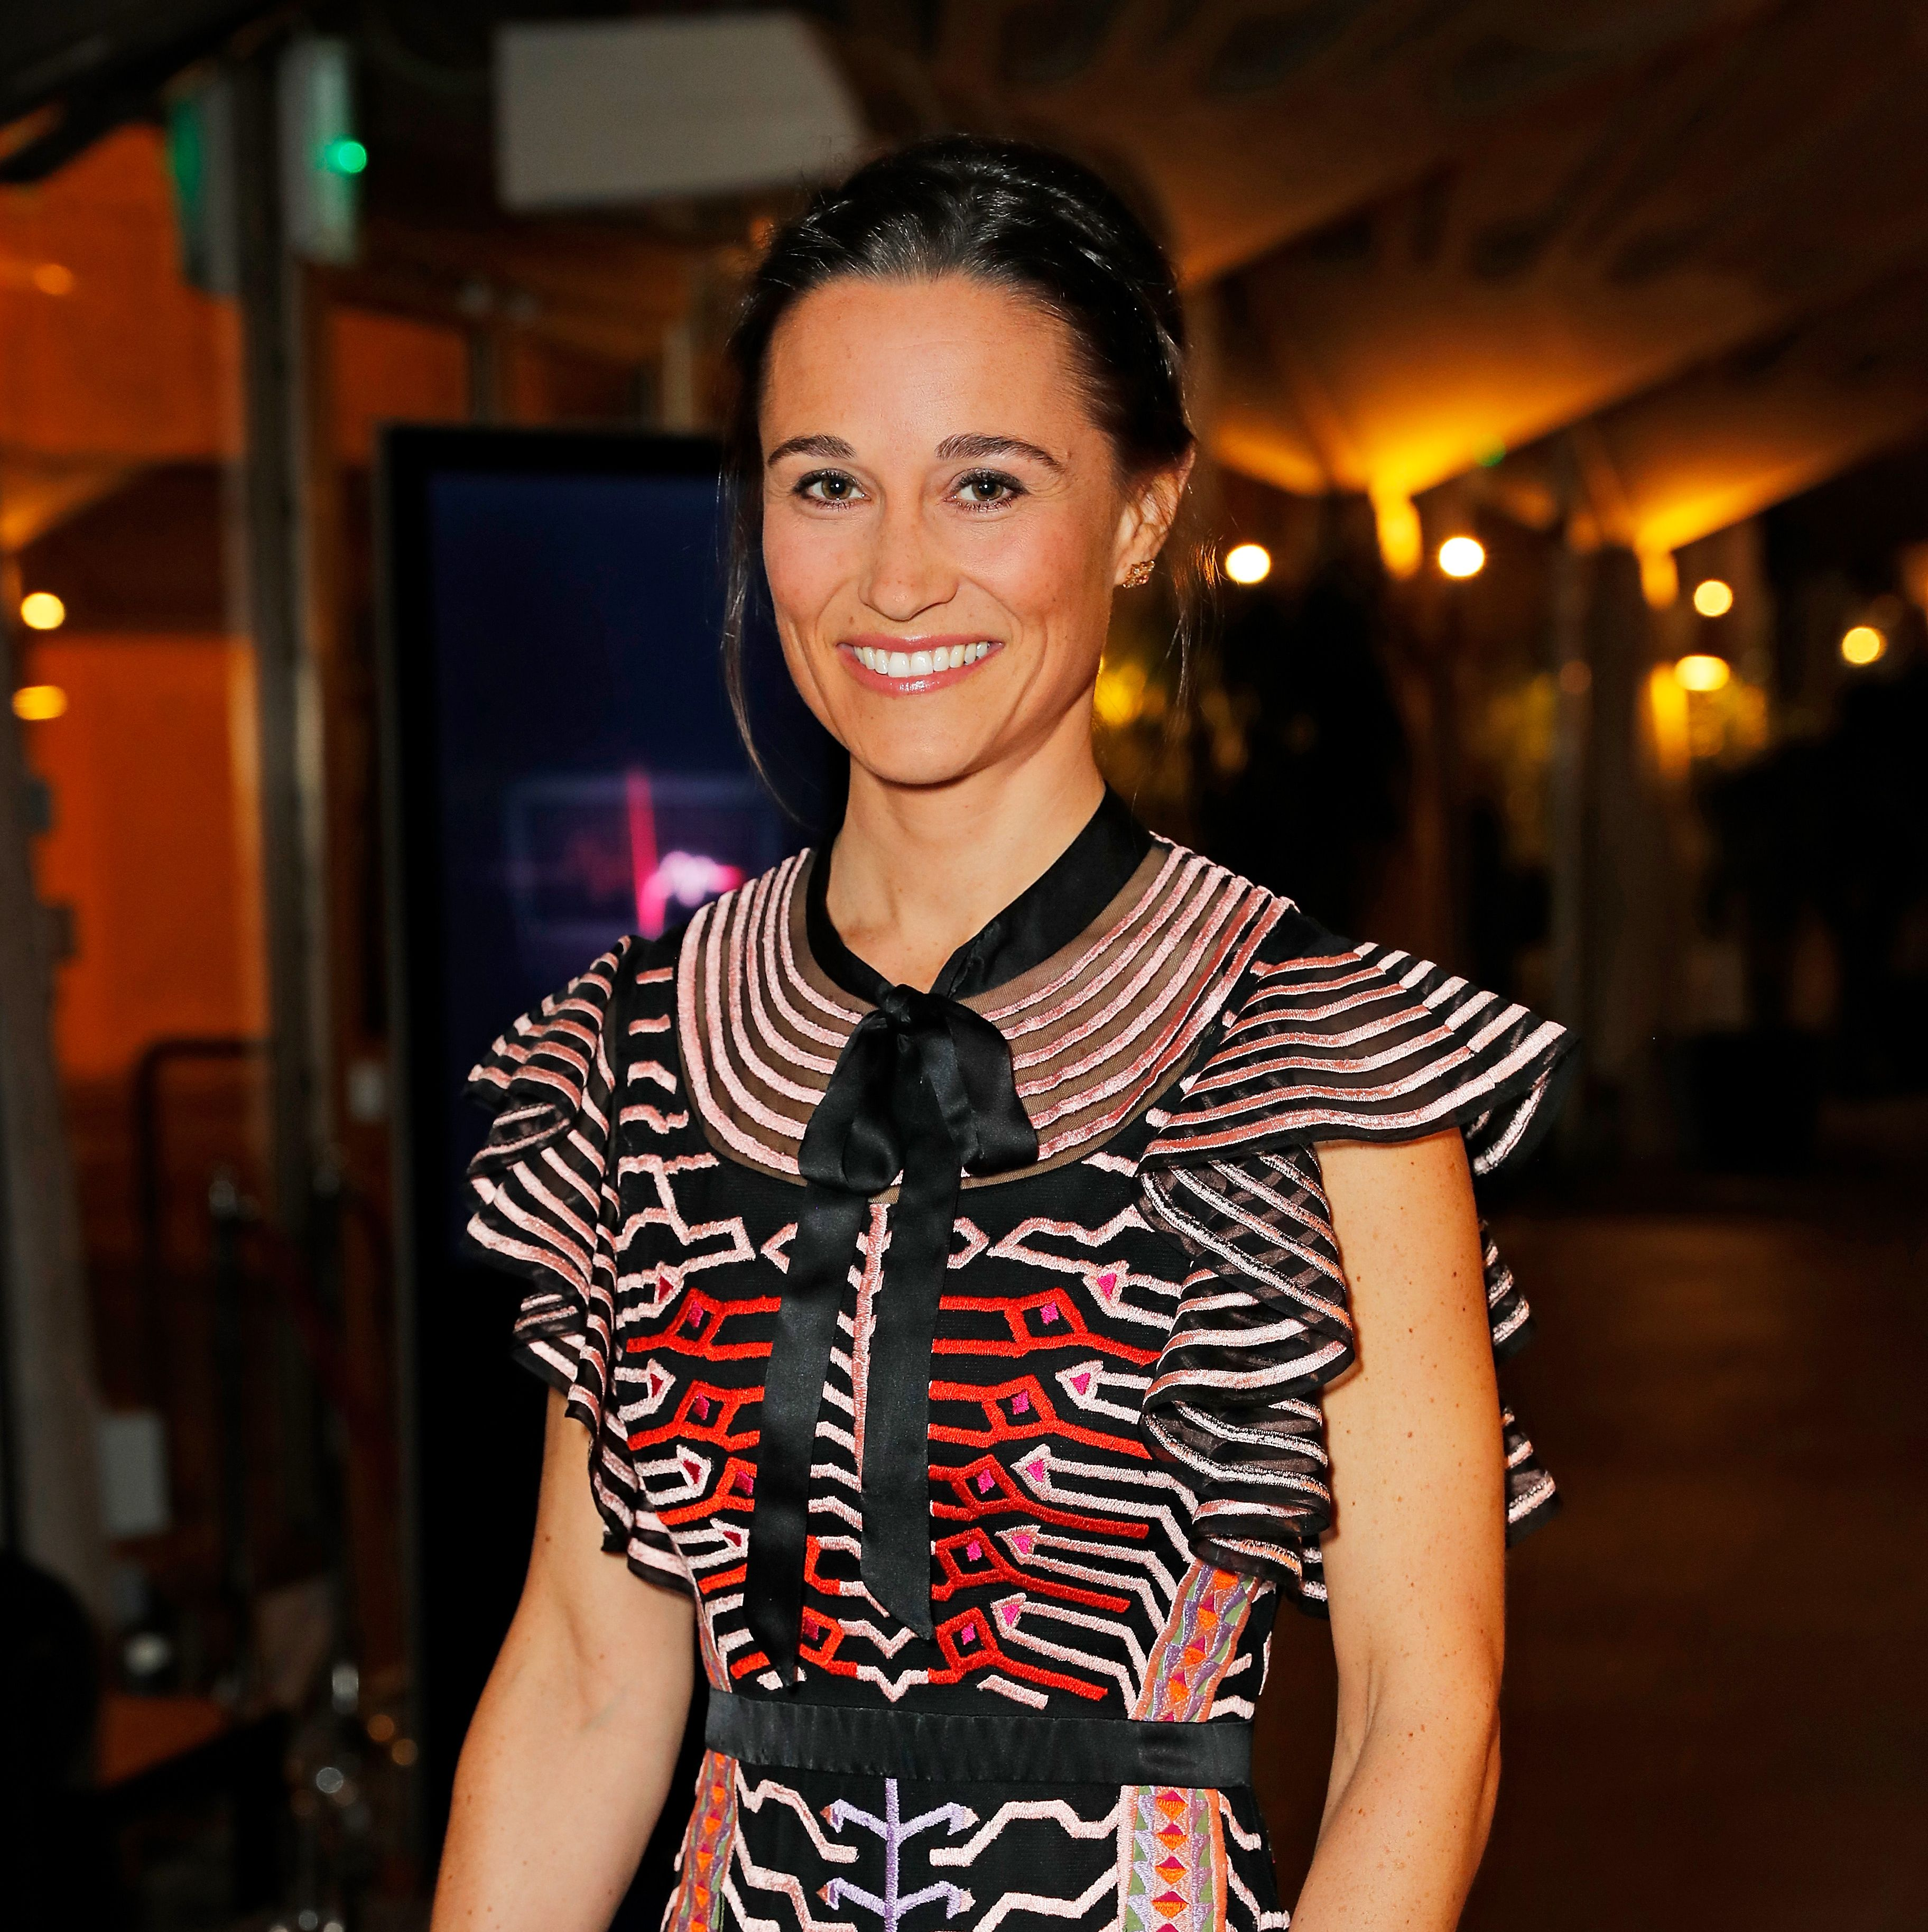 Pippa Middleton just made her first post-baby public appearance